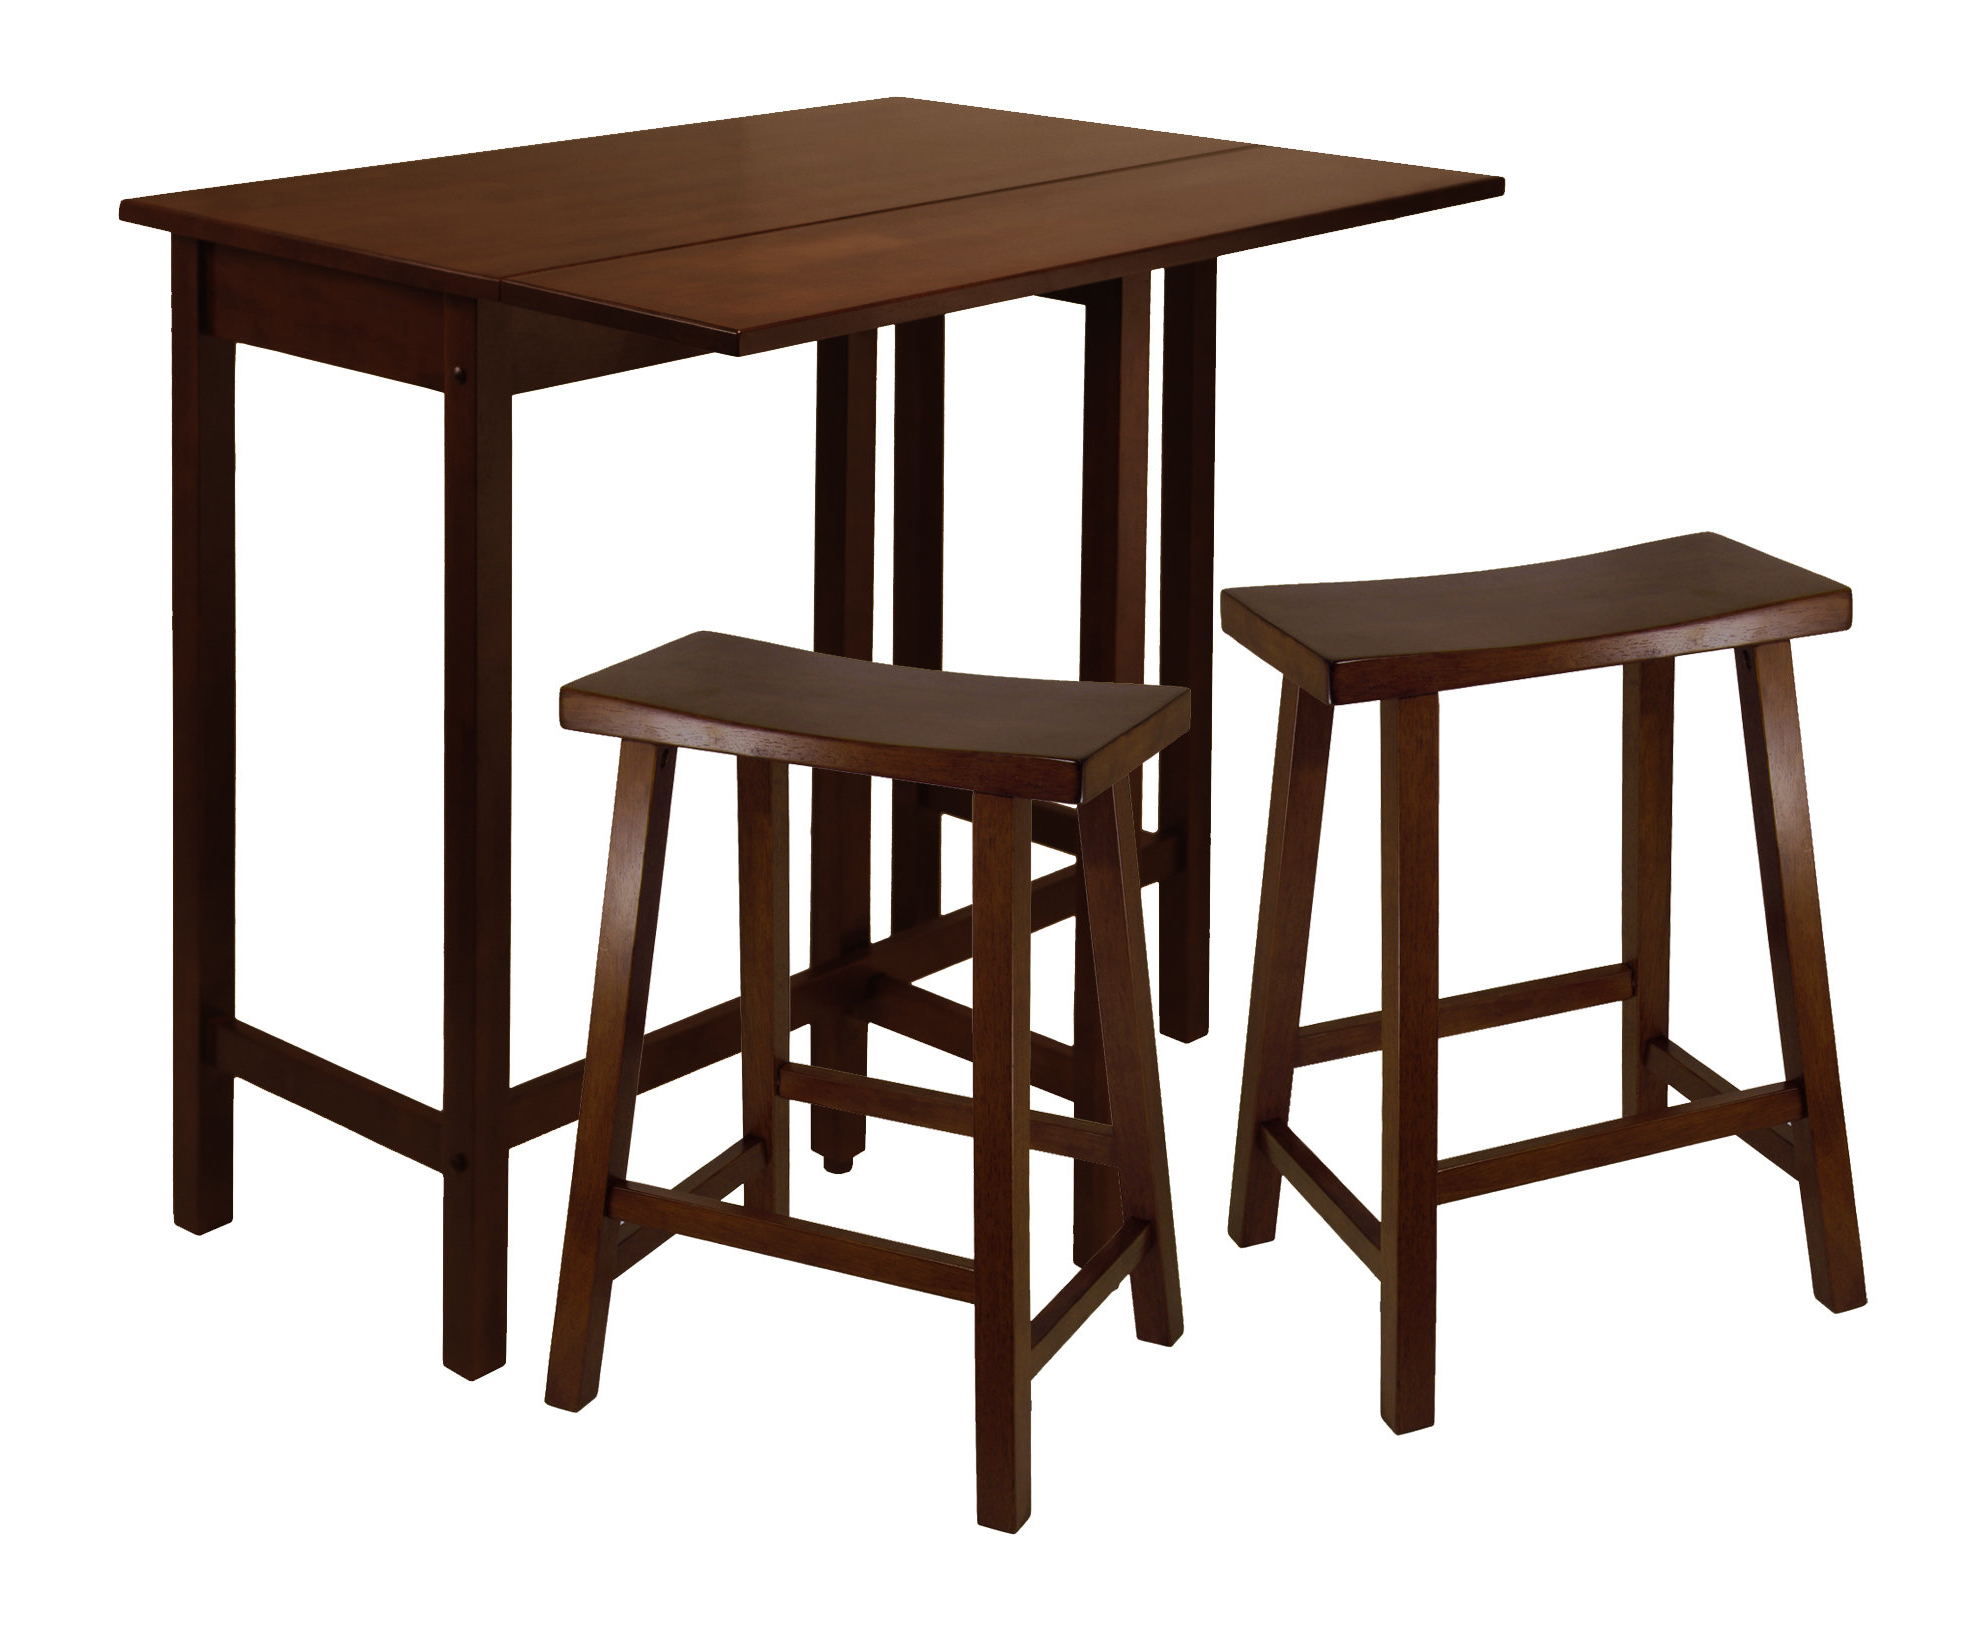 Best And Newest Bettencourt 3 Piece Counter Height Solid Wood Dining Sets Regarding Red Barrel Studio Bettencourt 3 Piece Pub Set (View 2 of 20)